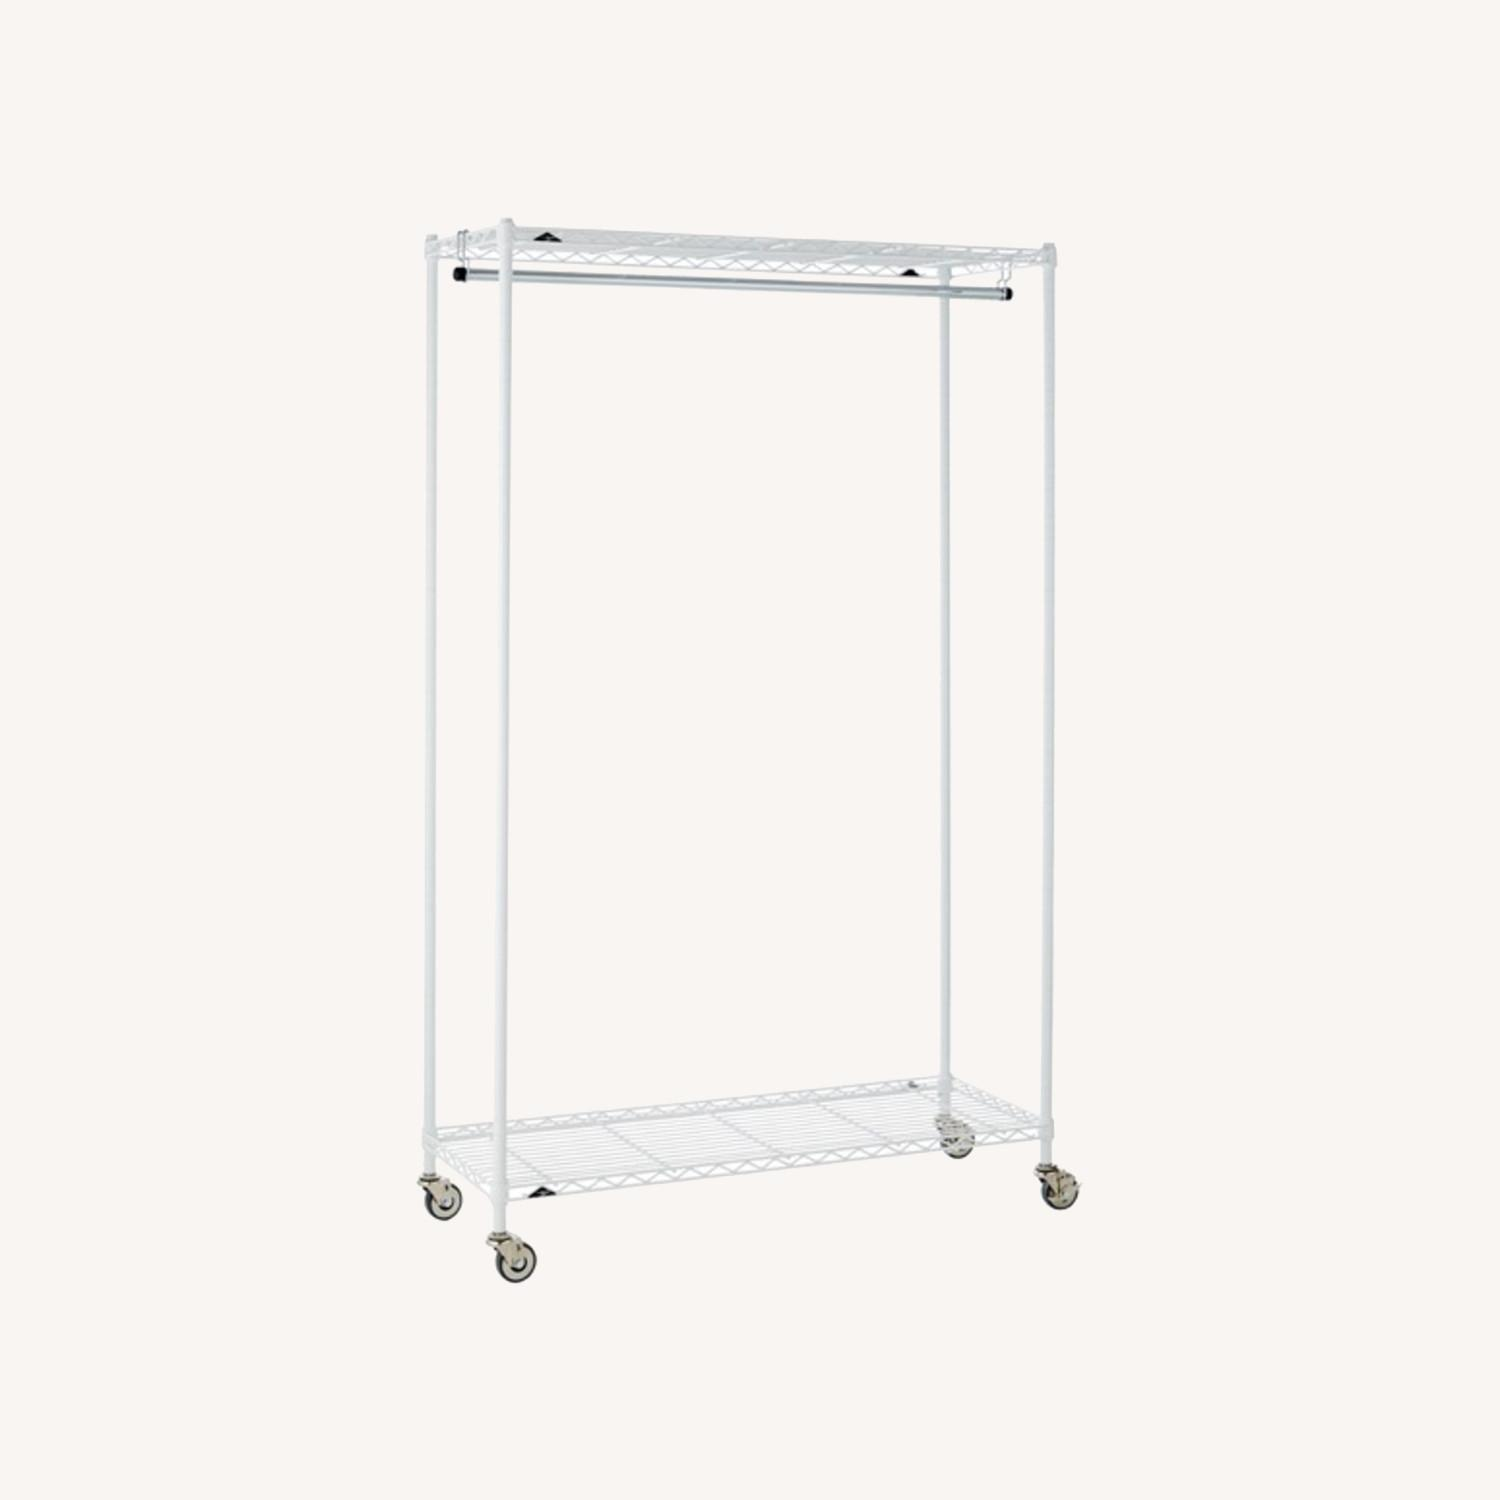 InterMetro Large White Clothes Rack - image-0